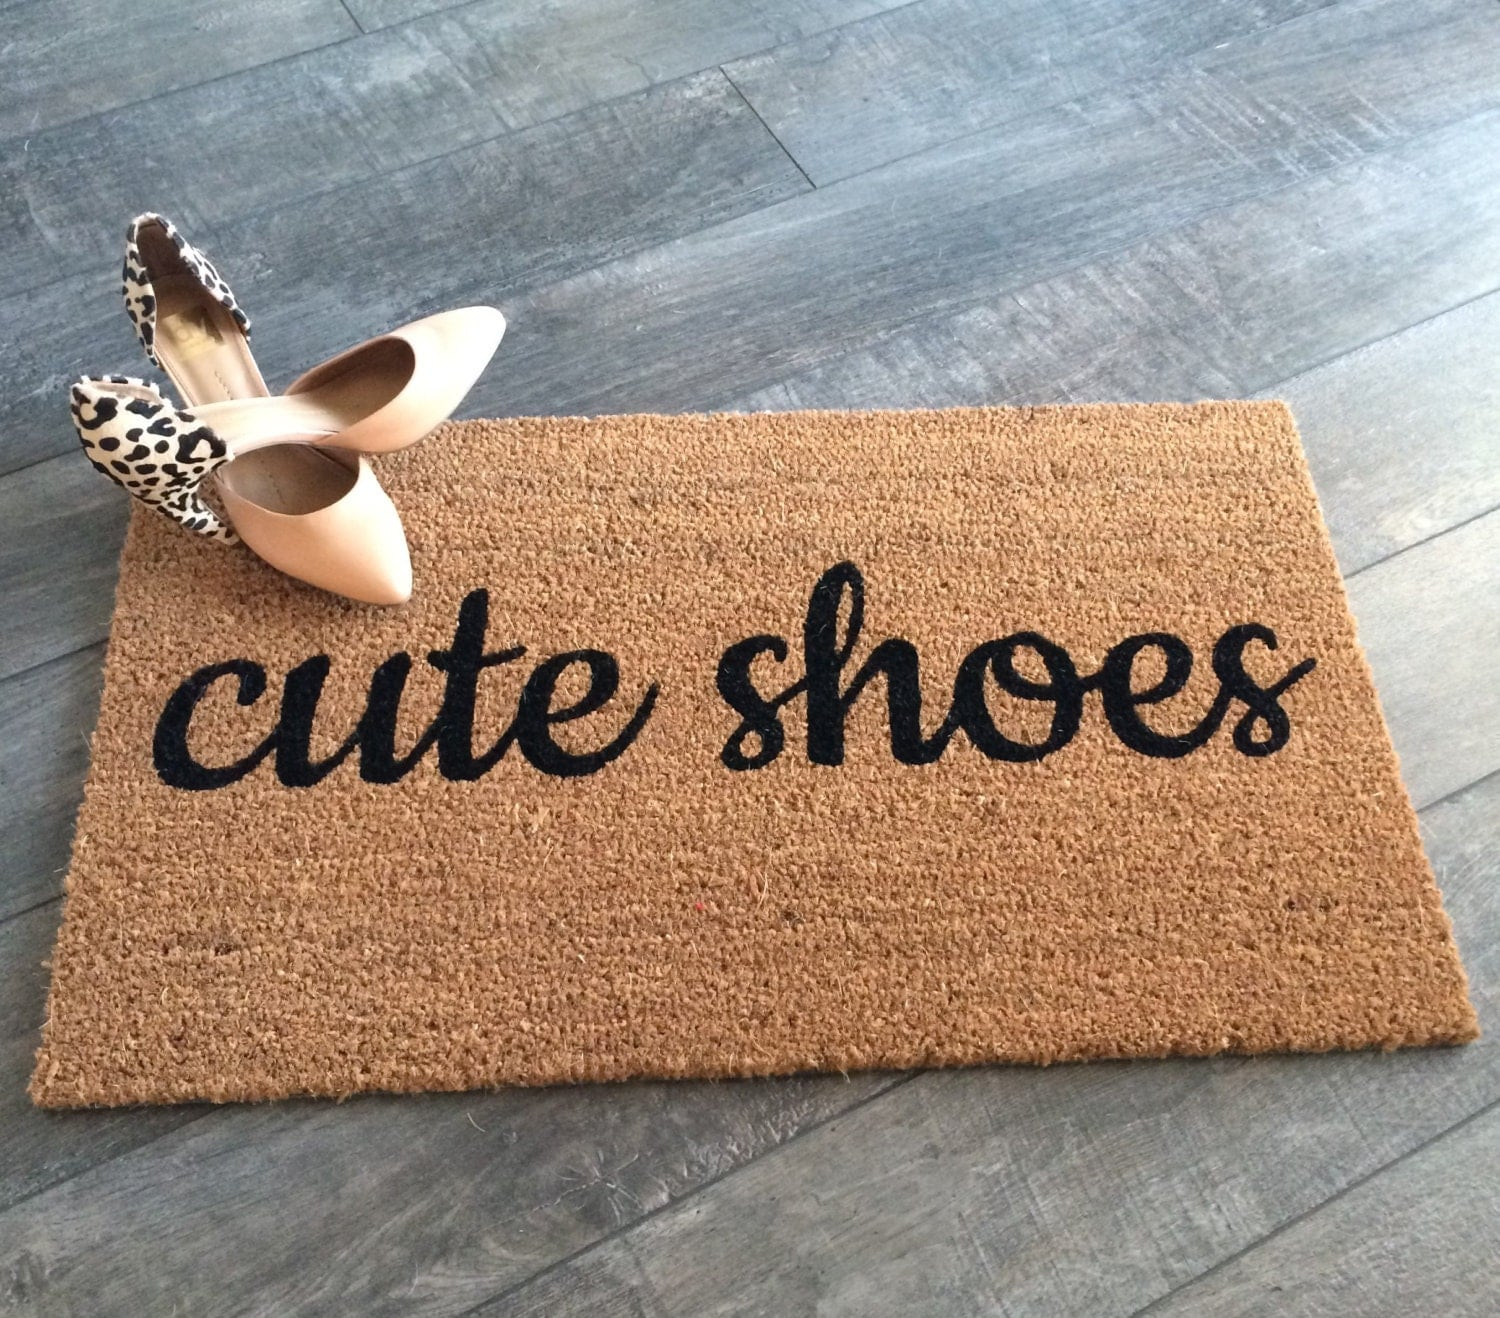 Cute Shoes Doormat Hand Painted Outdoor Welcome Mat Cute